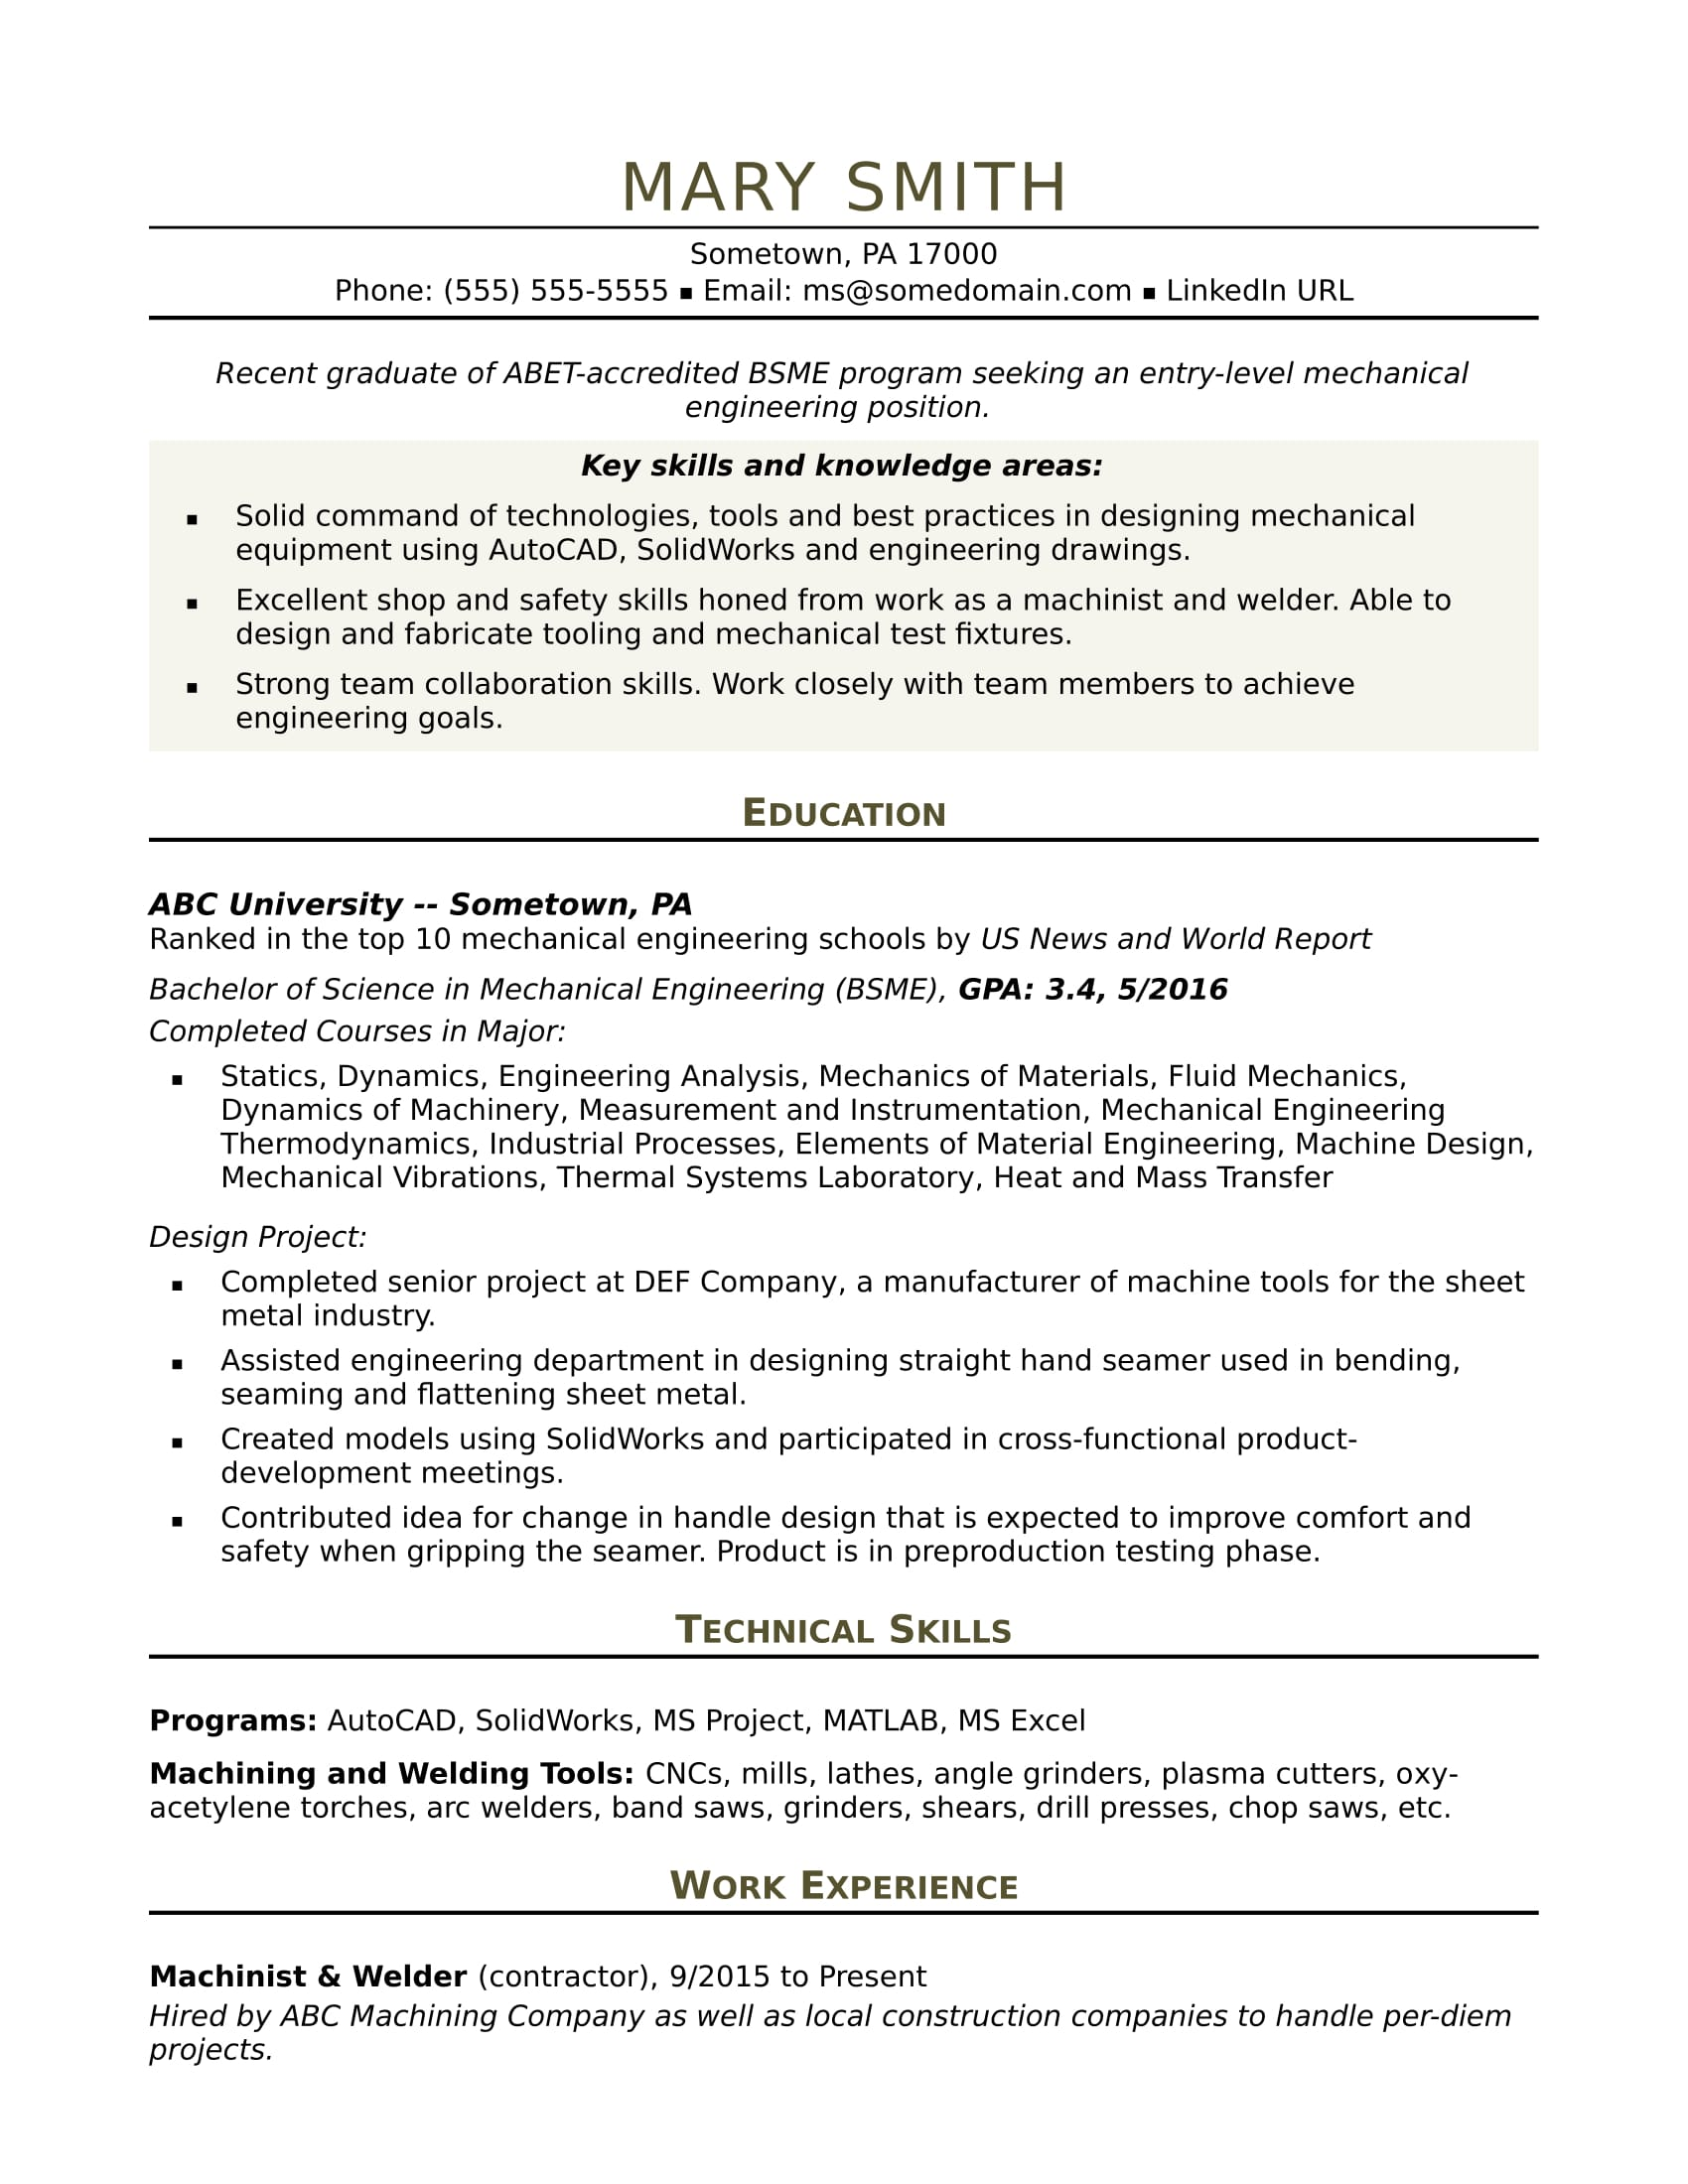 Sample resume for an entry level mechanical engineer for Sample resume for diploma in mechanical engineering